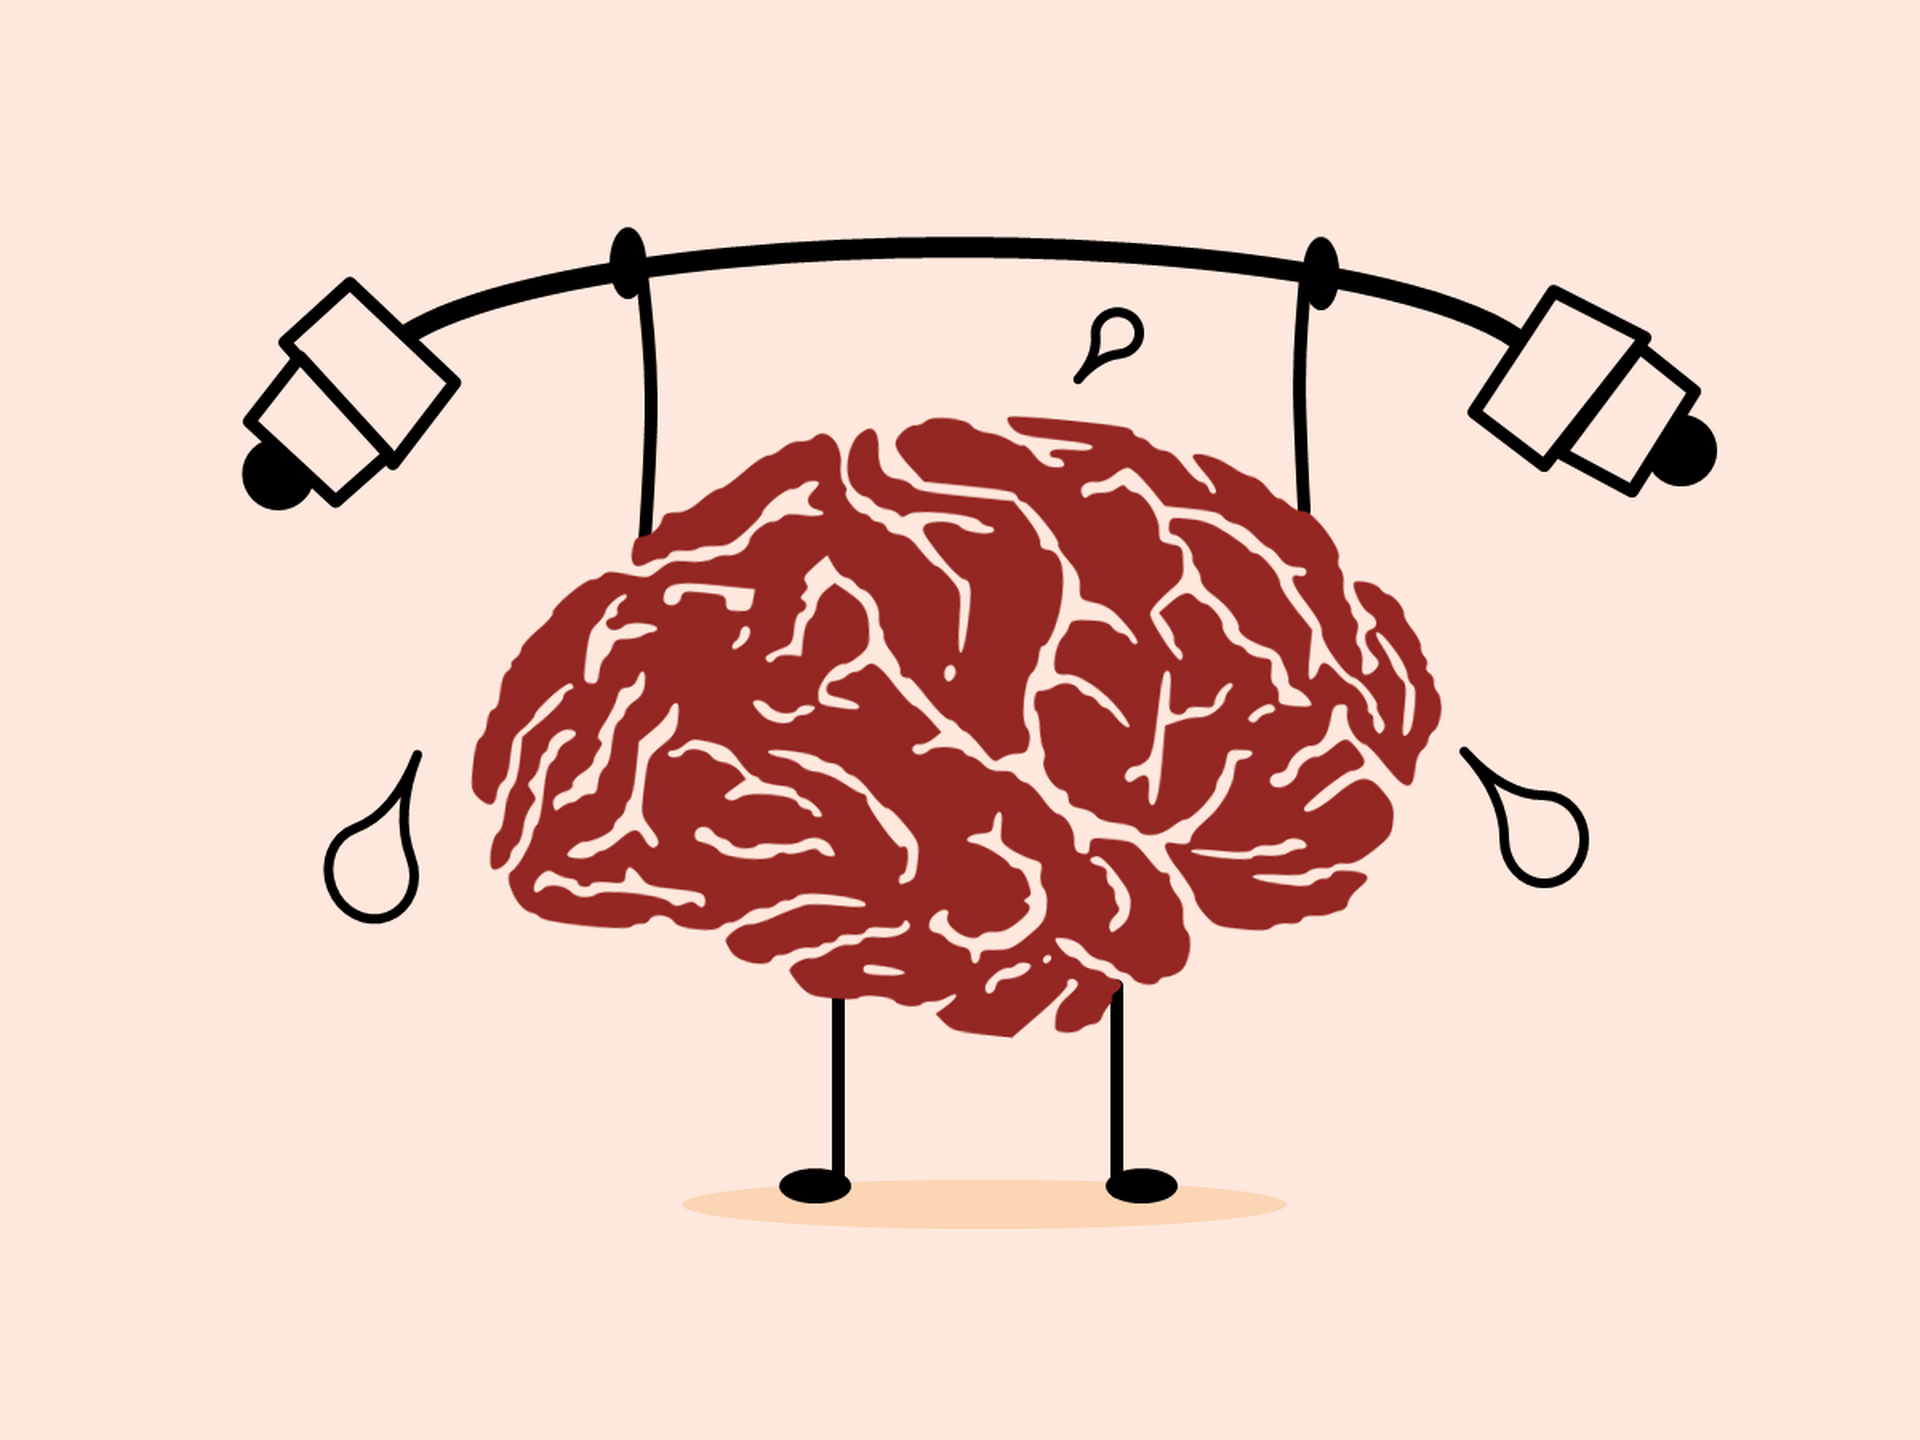 Brain lifting weights exercise and studying